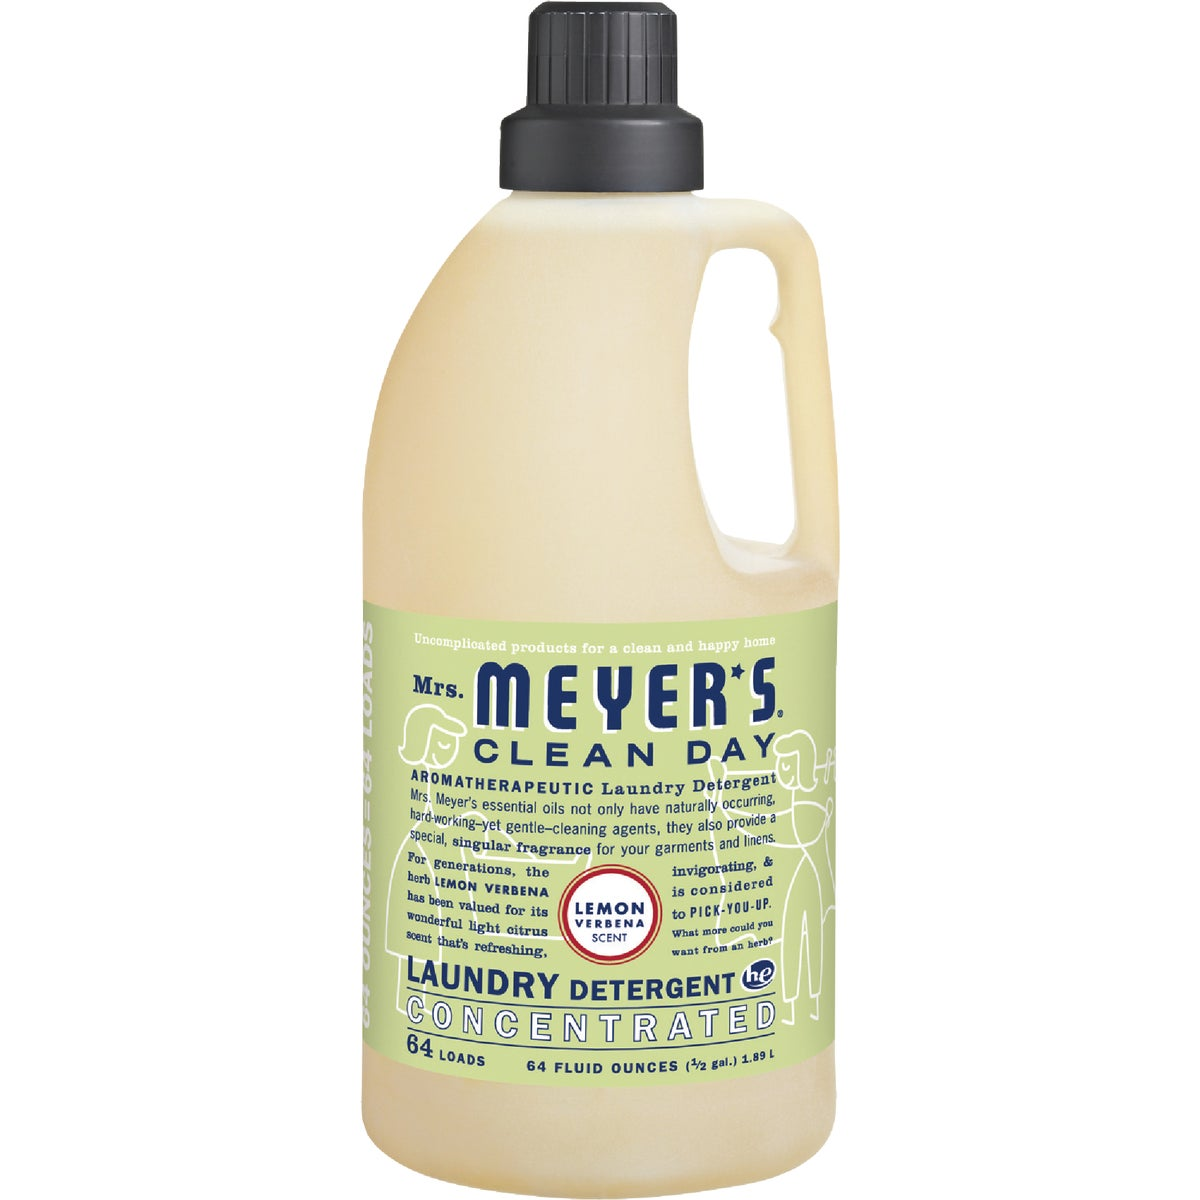 LEMON LAUNDRY DETERGENT - 14631 by Mrs Meyers Clean Day